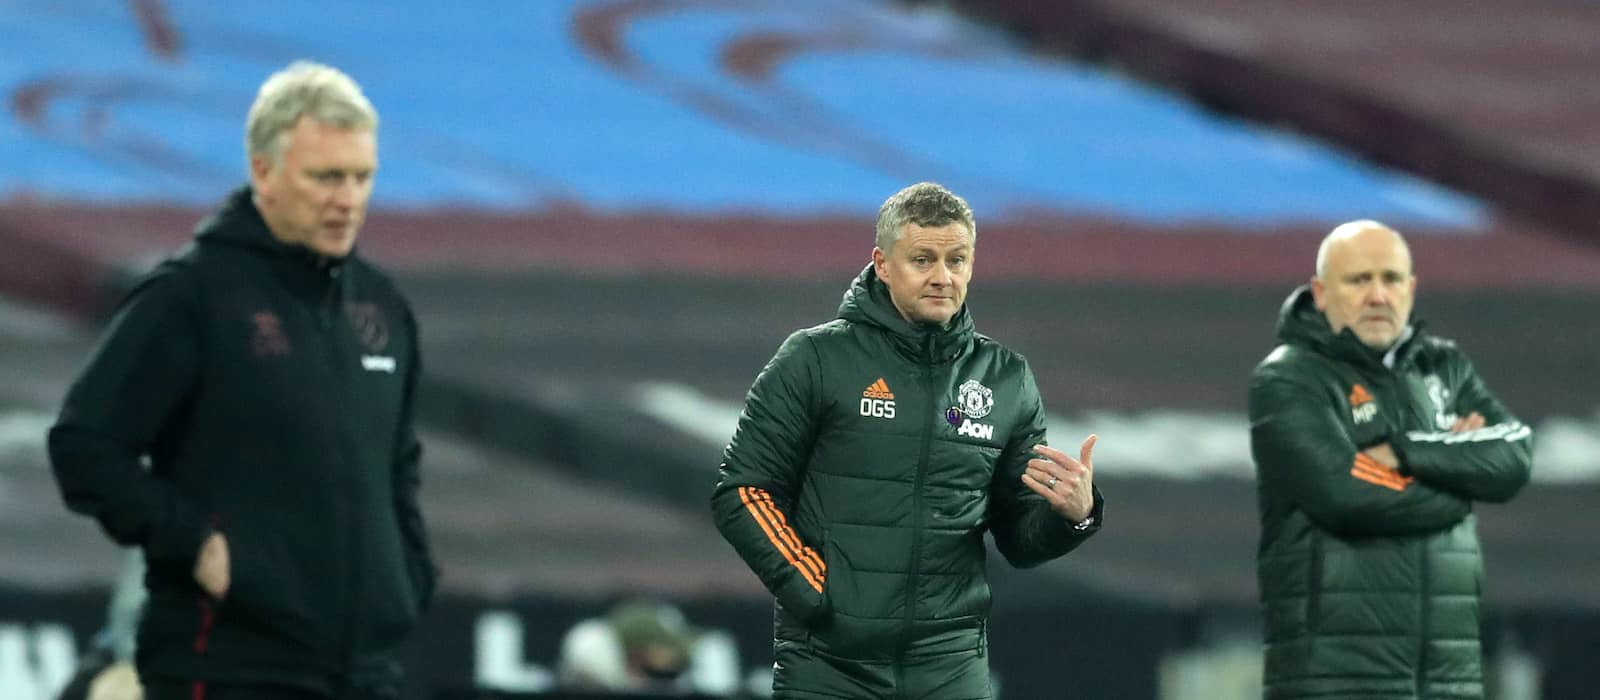 Ole Gunnar Solskjaer's first two years at Man United – hit or miss?